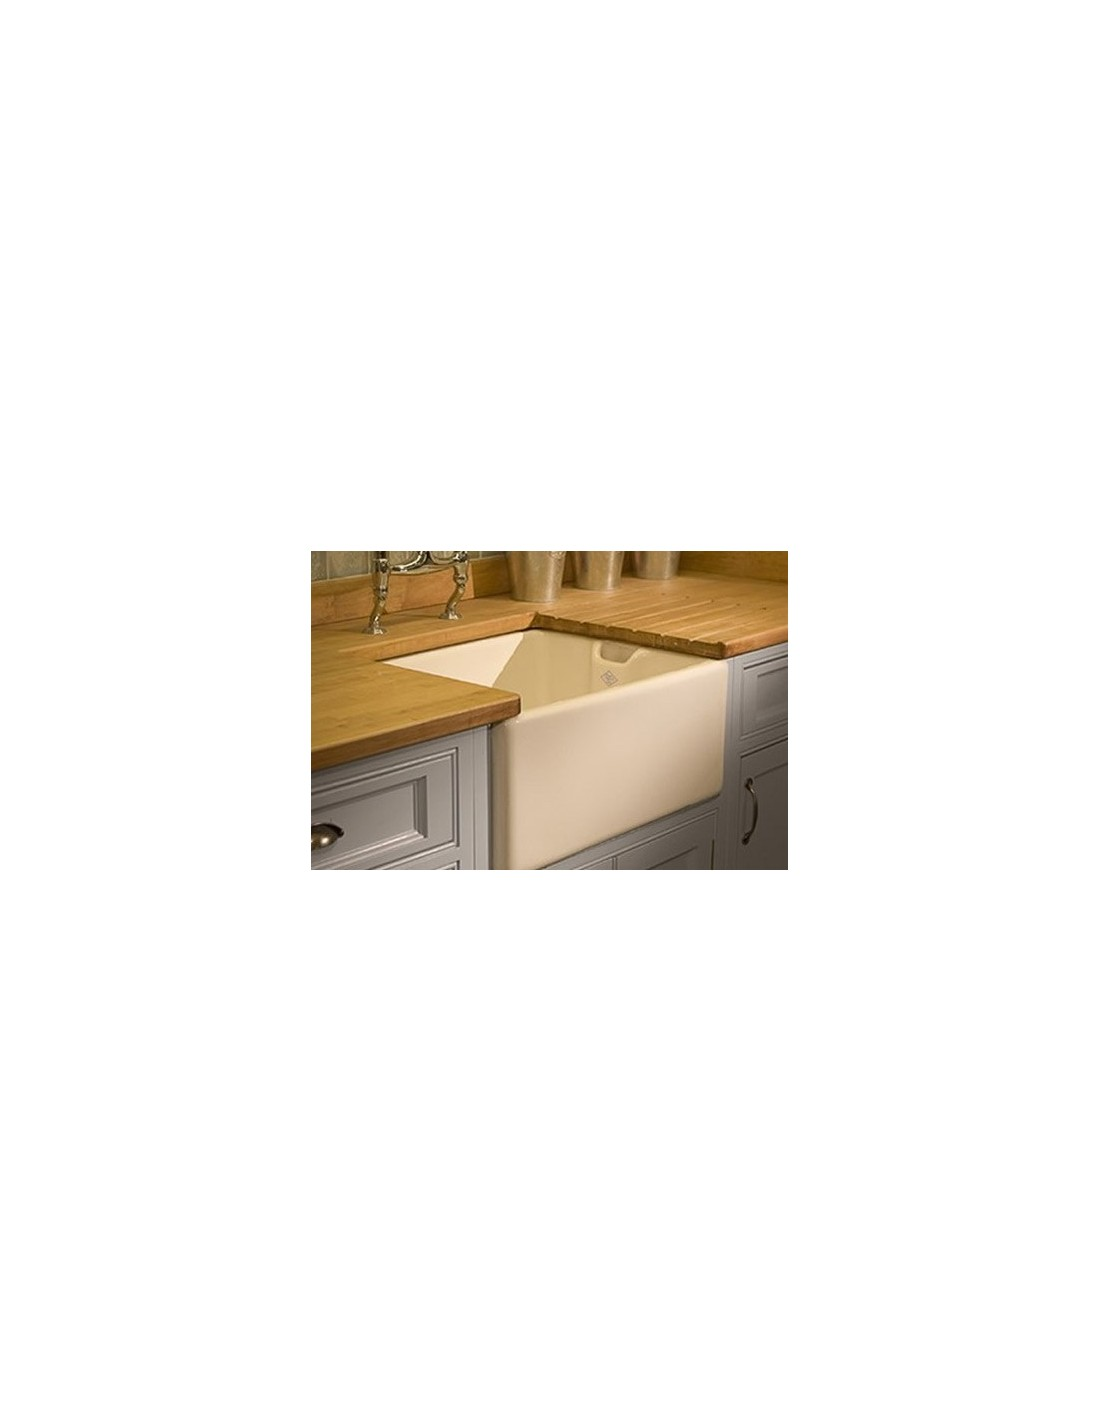 Butler Belfast Ceramic Sinks East Coast Kitchens